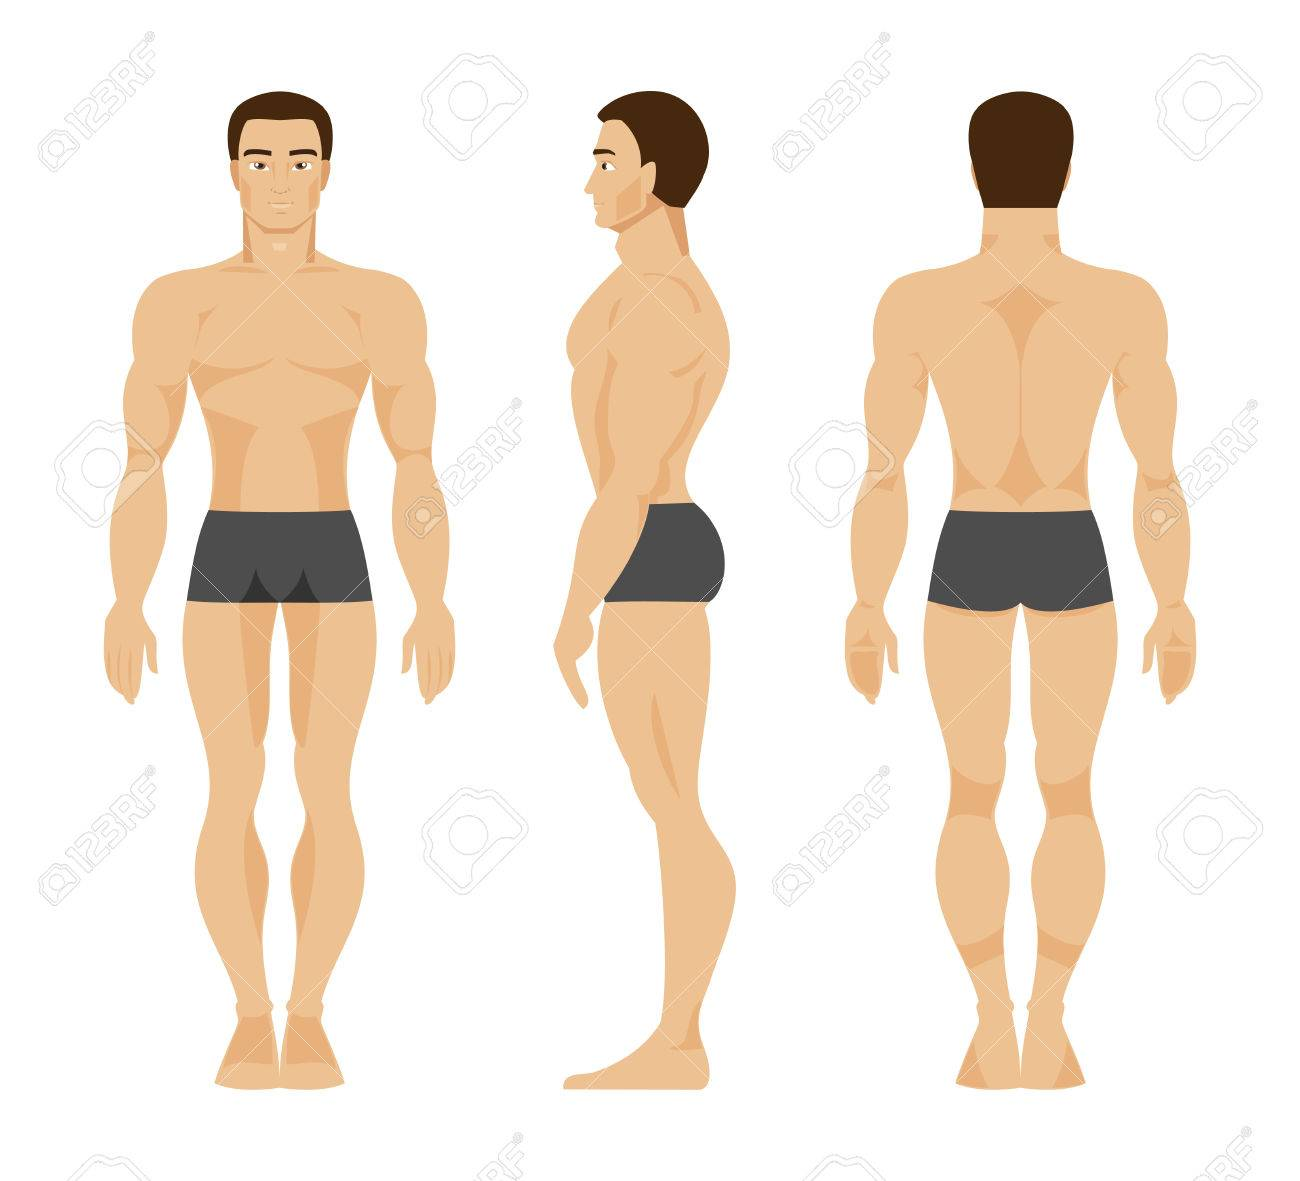 Anatomy of the male body in the front, rear and side - 51059309